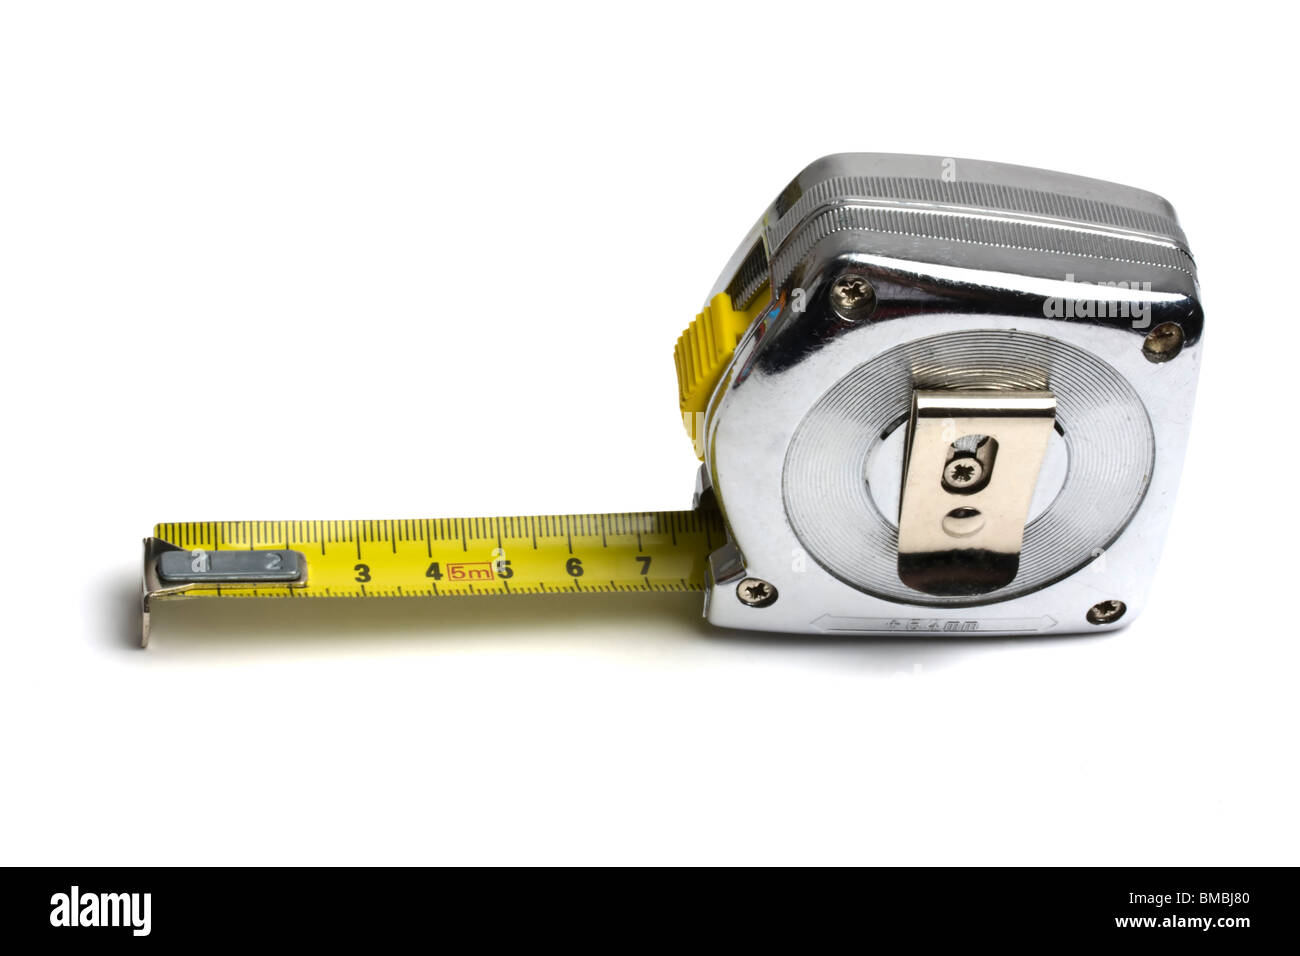 Tape measure isolated on white background - Stock Image